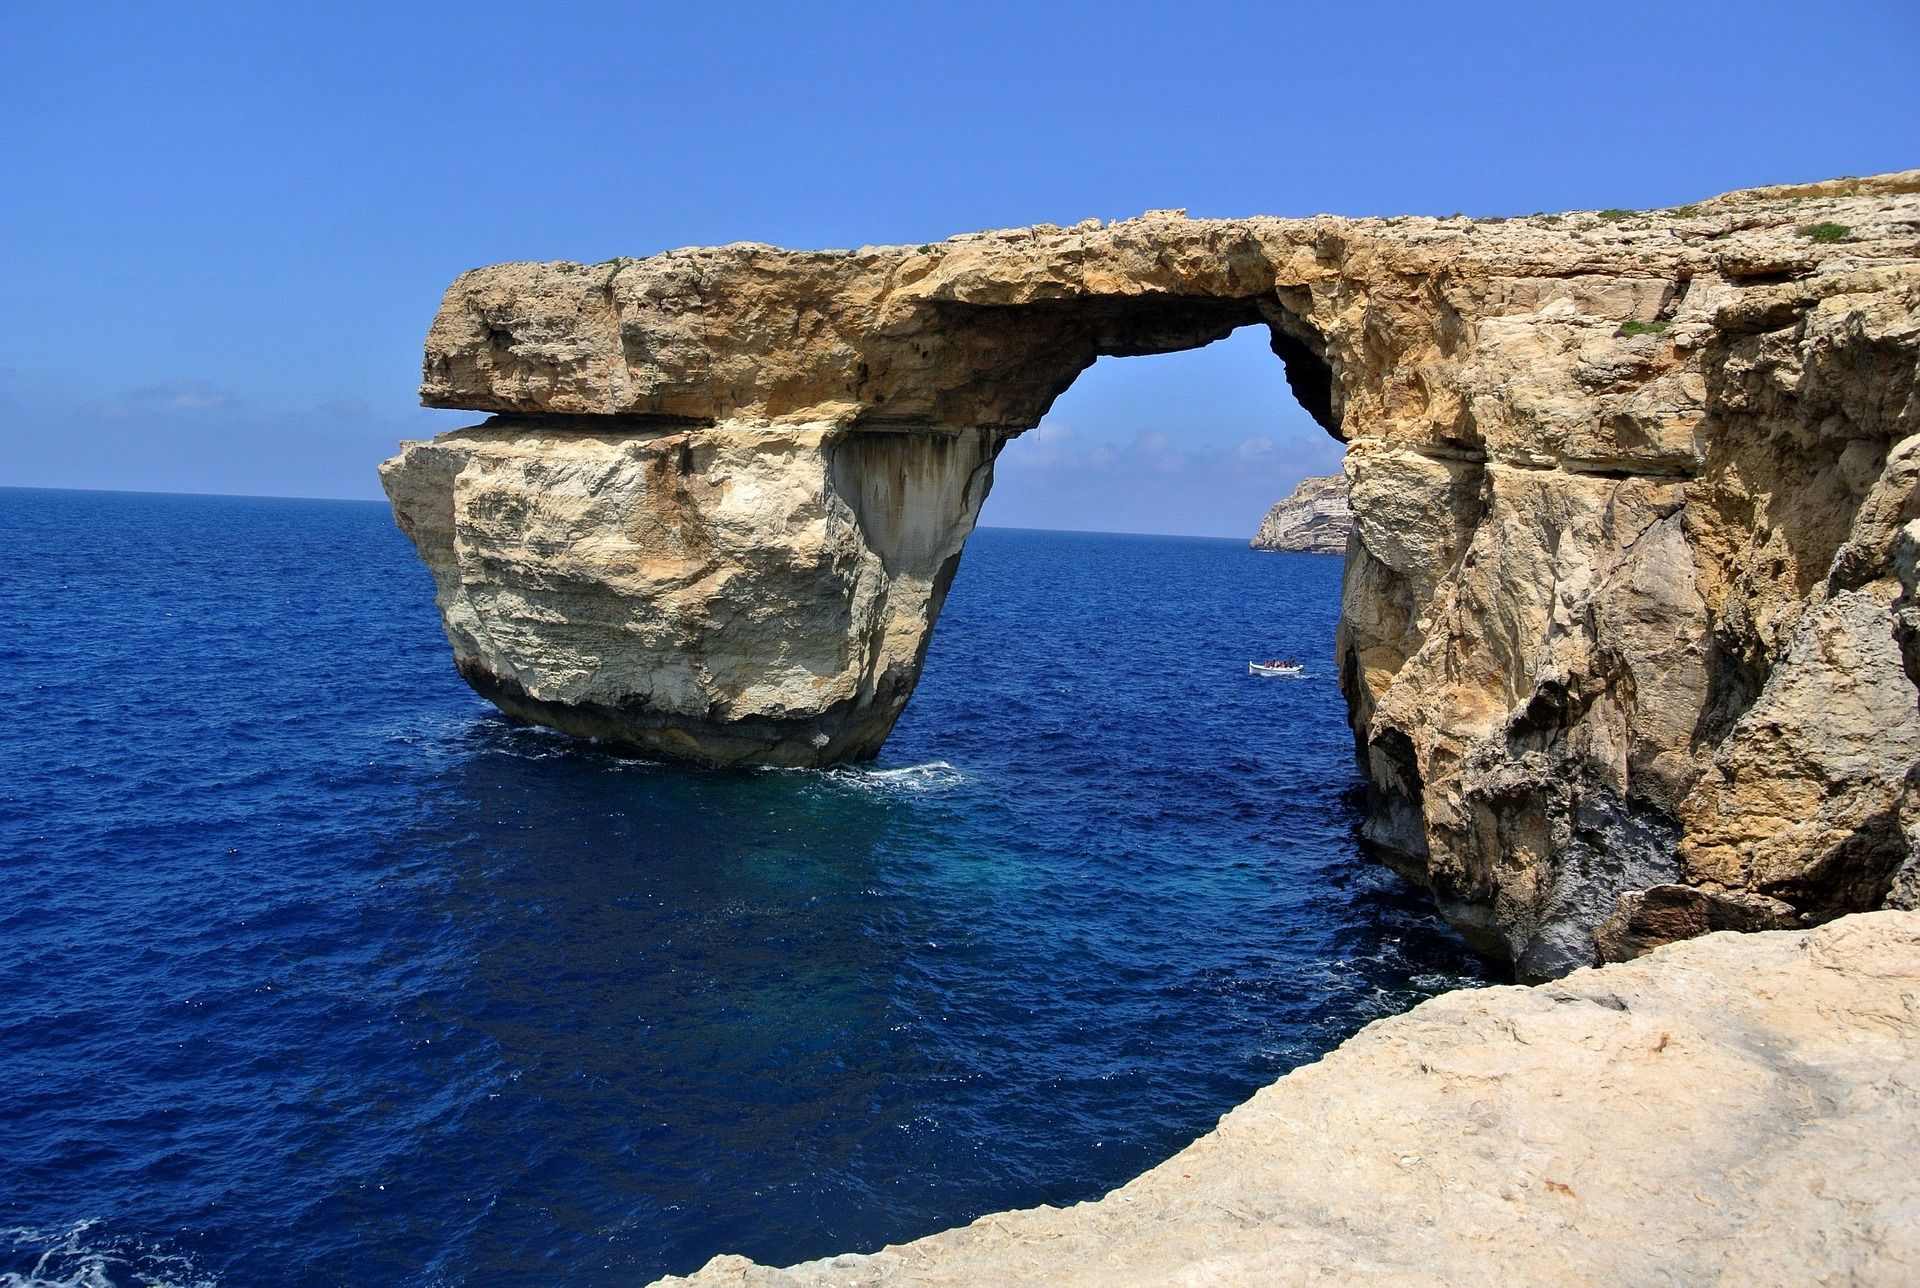 Azure window 2630574 1920